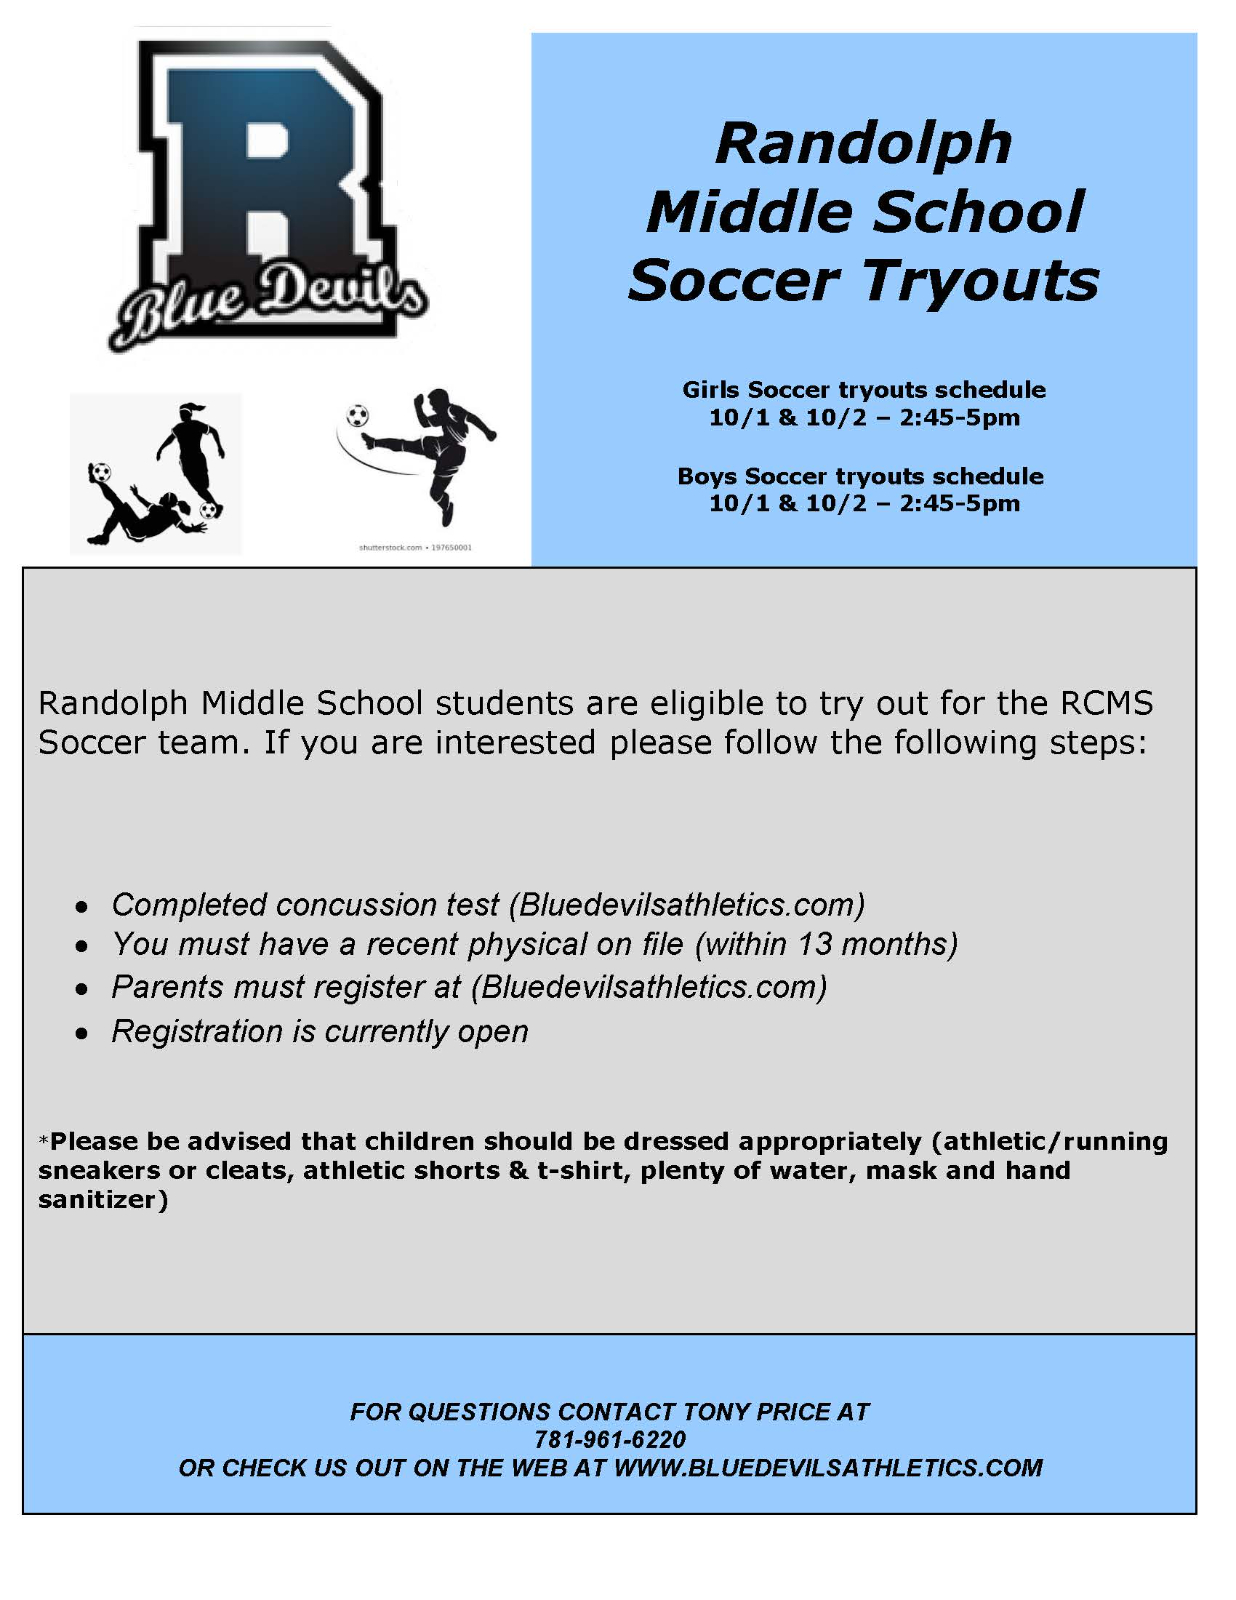 RCMS Middle School Soccer Tryouts